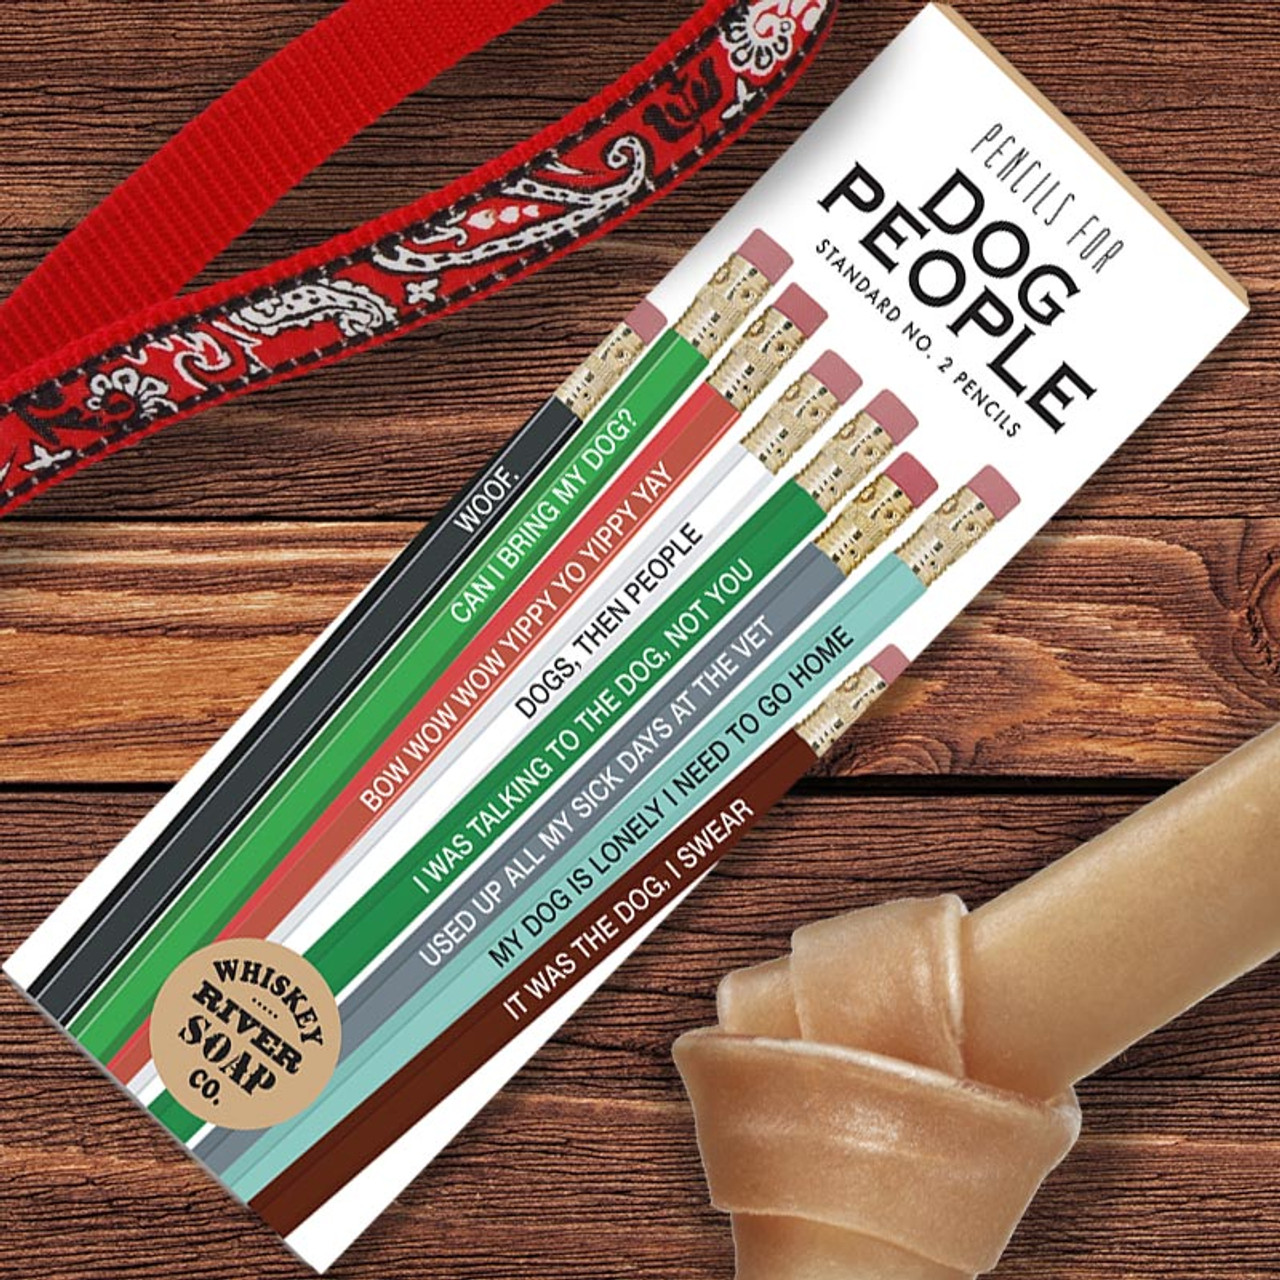 Dog Lover Gift of Pencils with Sayings